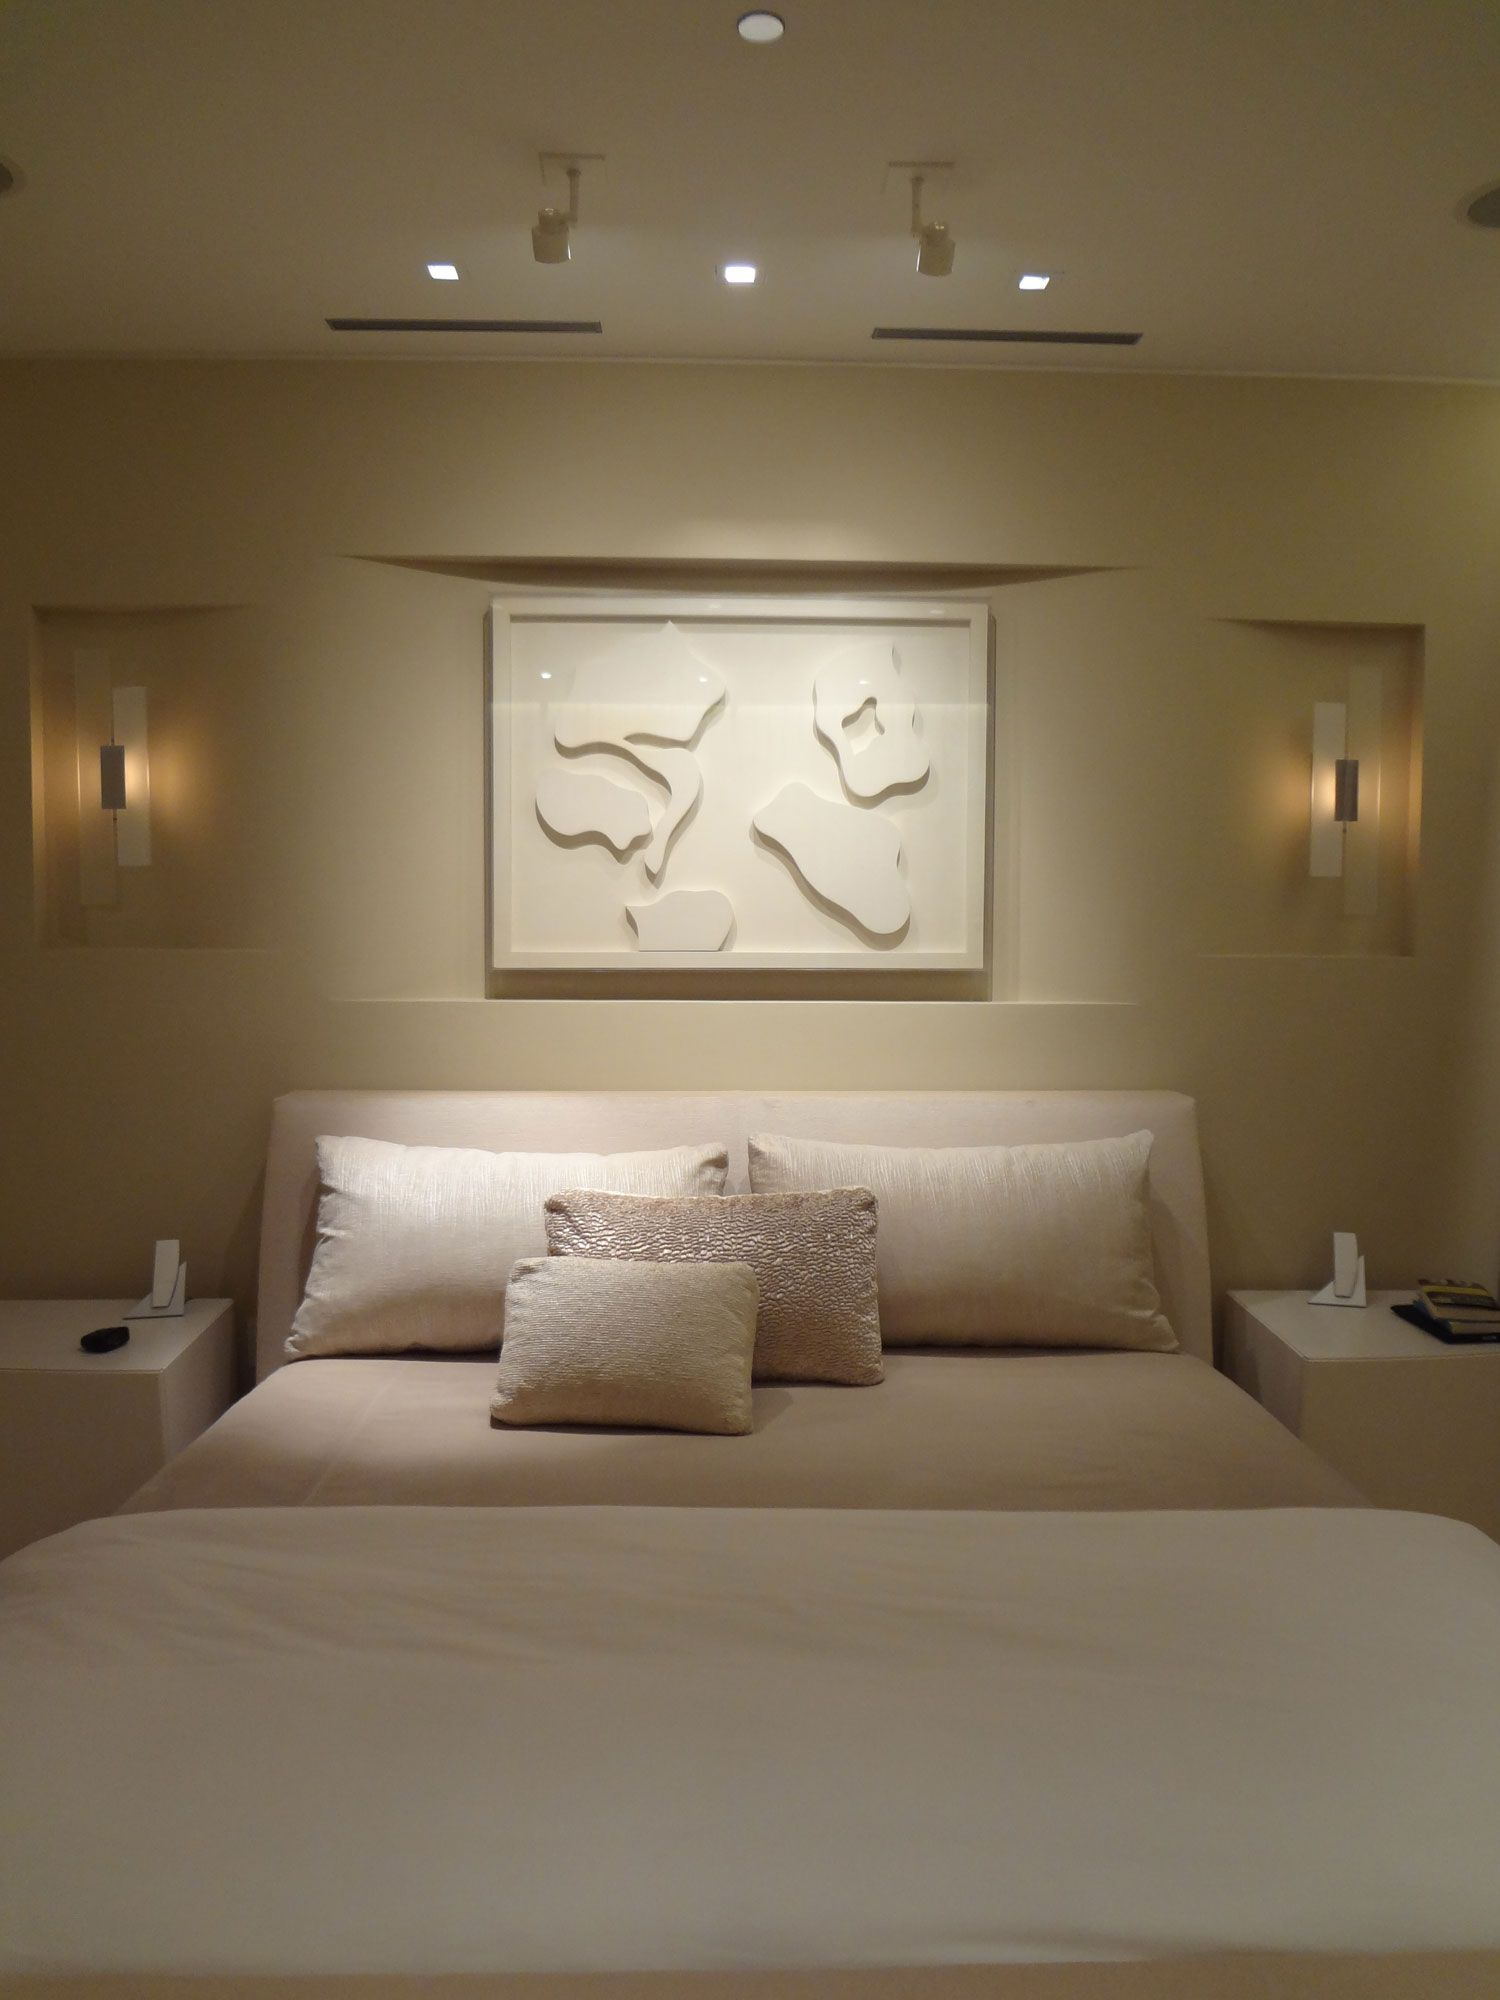 Installation Gallery Bedroom Lighting Bedroom Lighting Design Room Ambiance Sconces Bedroom